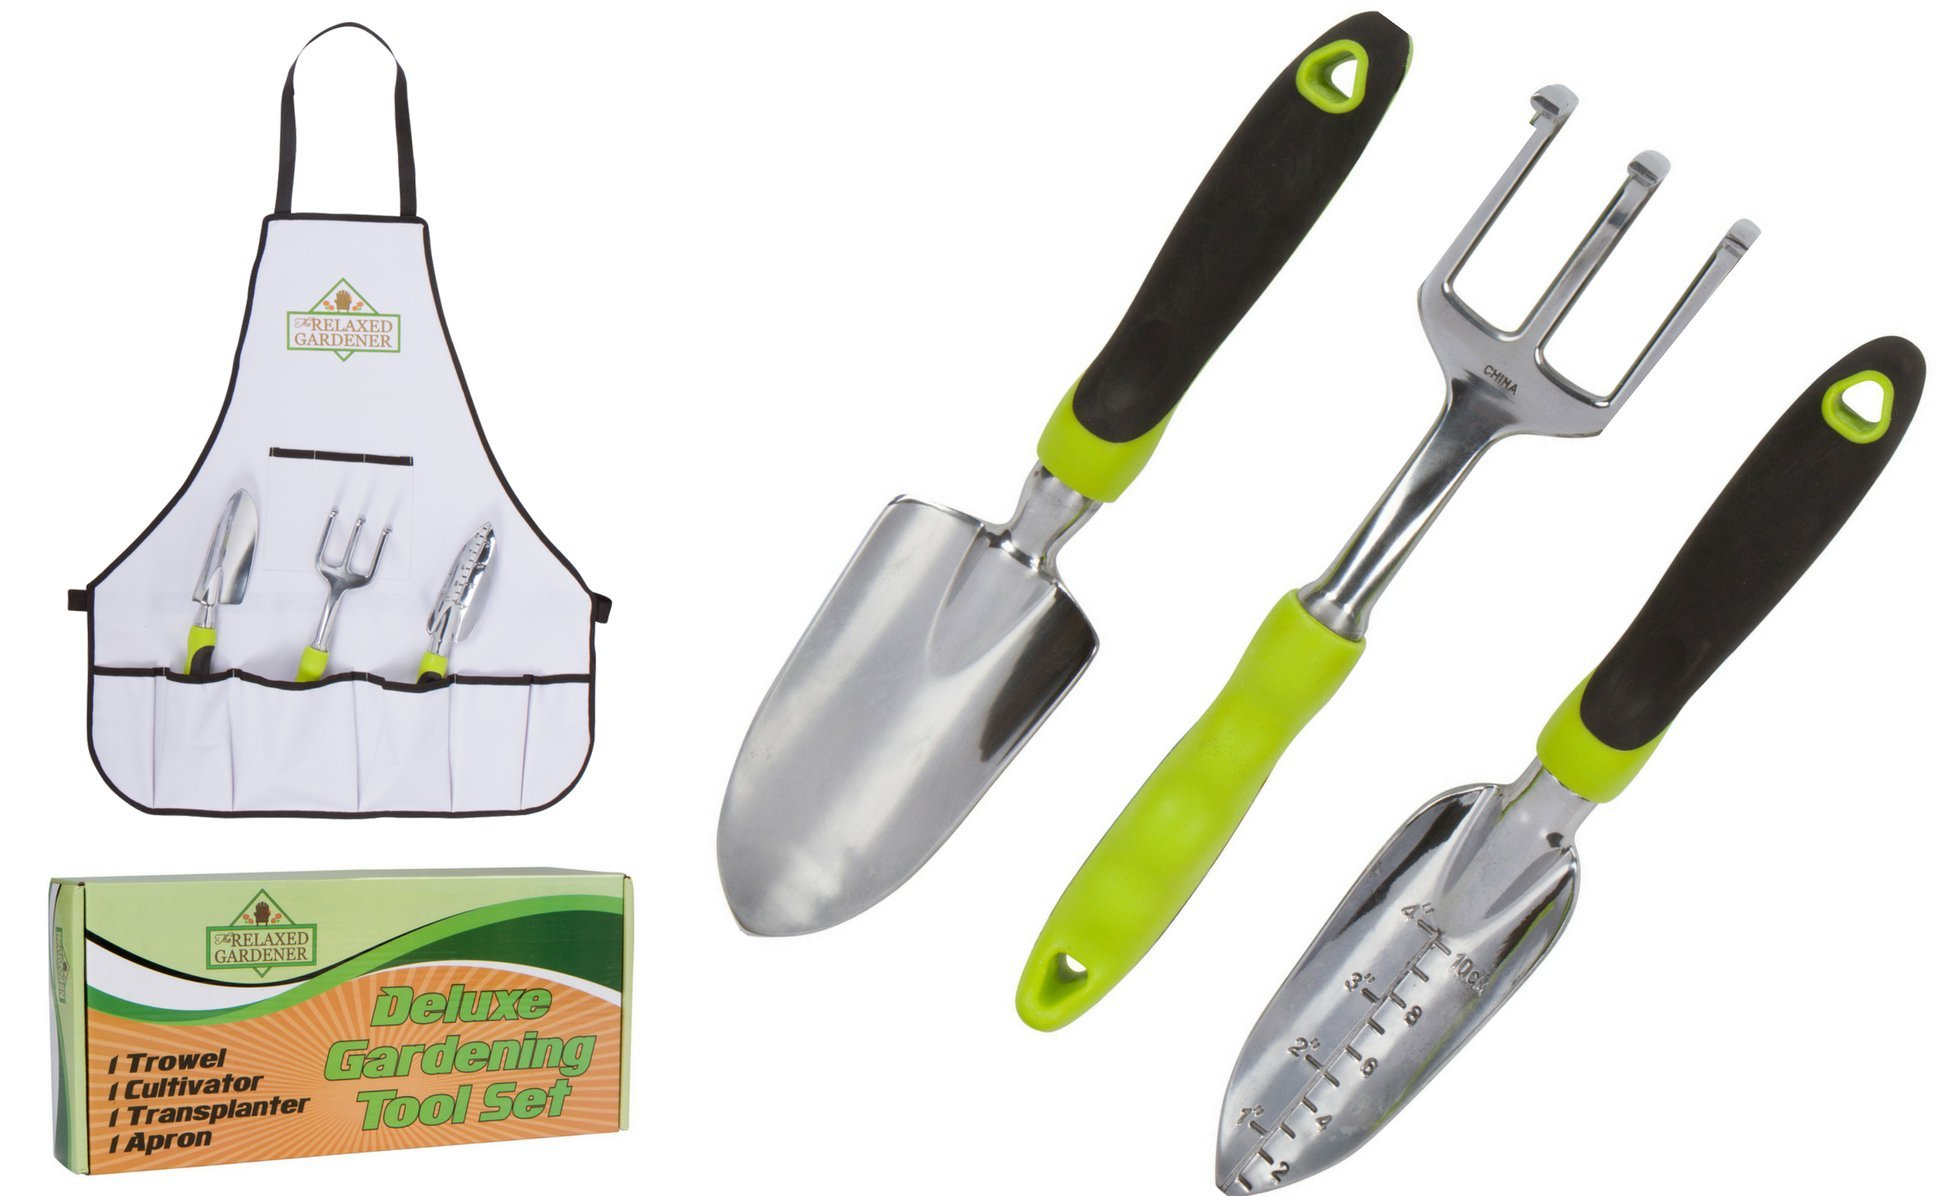 The Relaxed Gardener Garden Tool Set - 3 Heavy Duty Gardening Hand Tools - Trowel, Cultivator, and Transplanter with Bonus Apron - Rust-Proof Gardening Tools Kit Gift for Men and Women